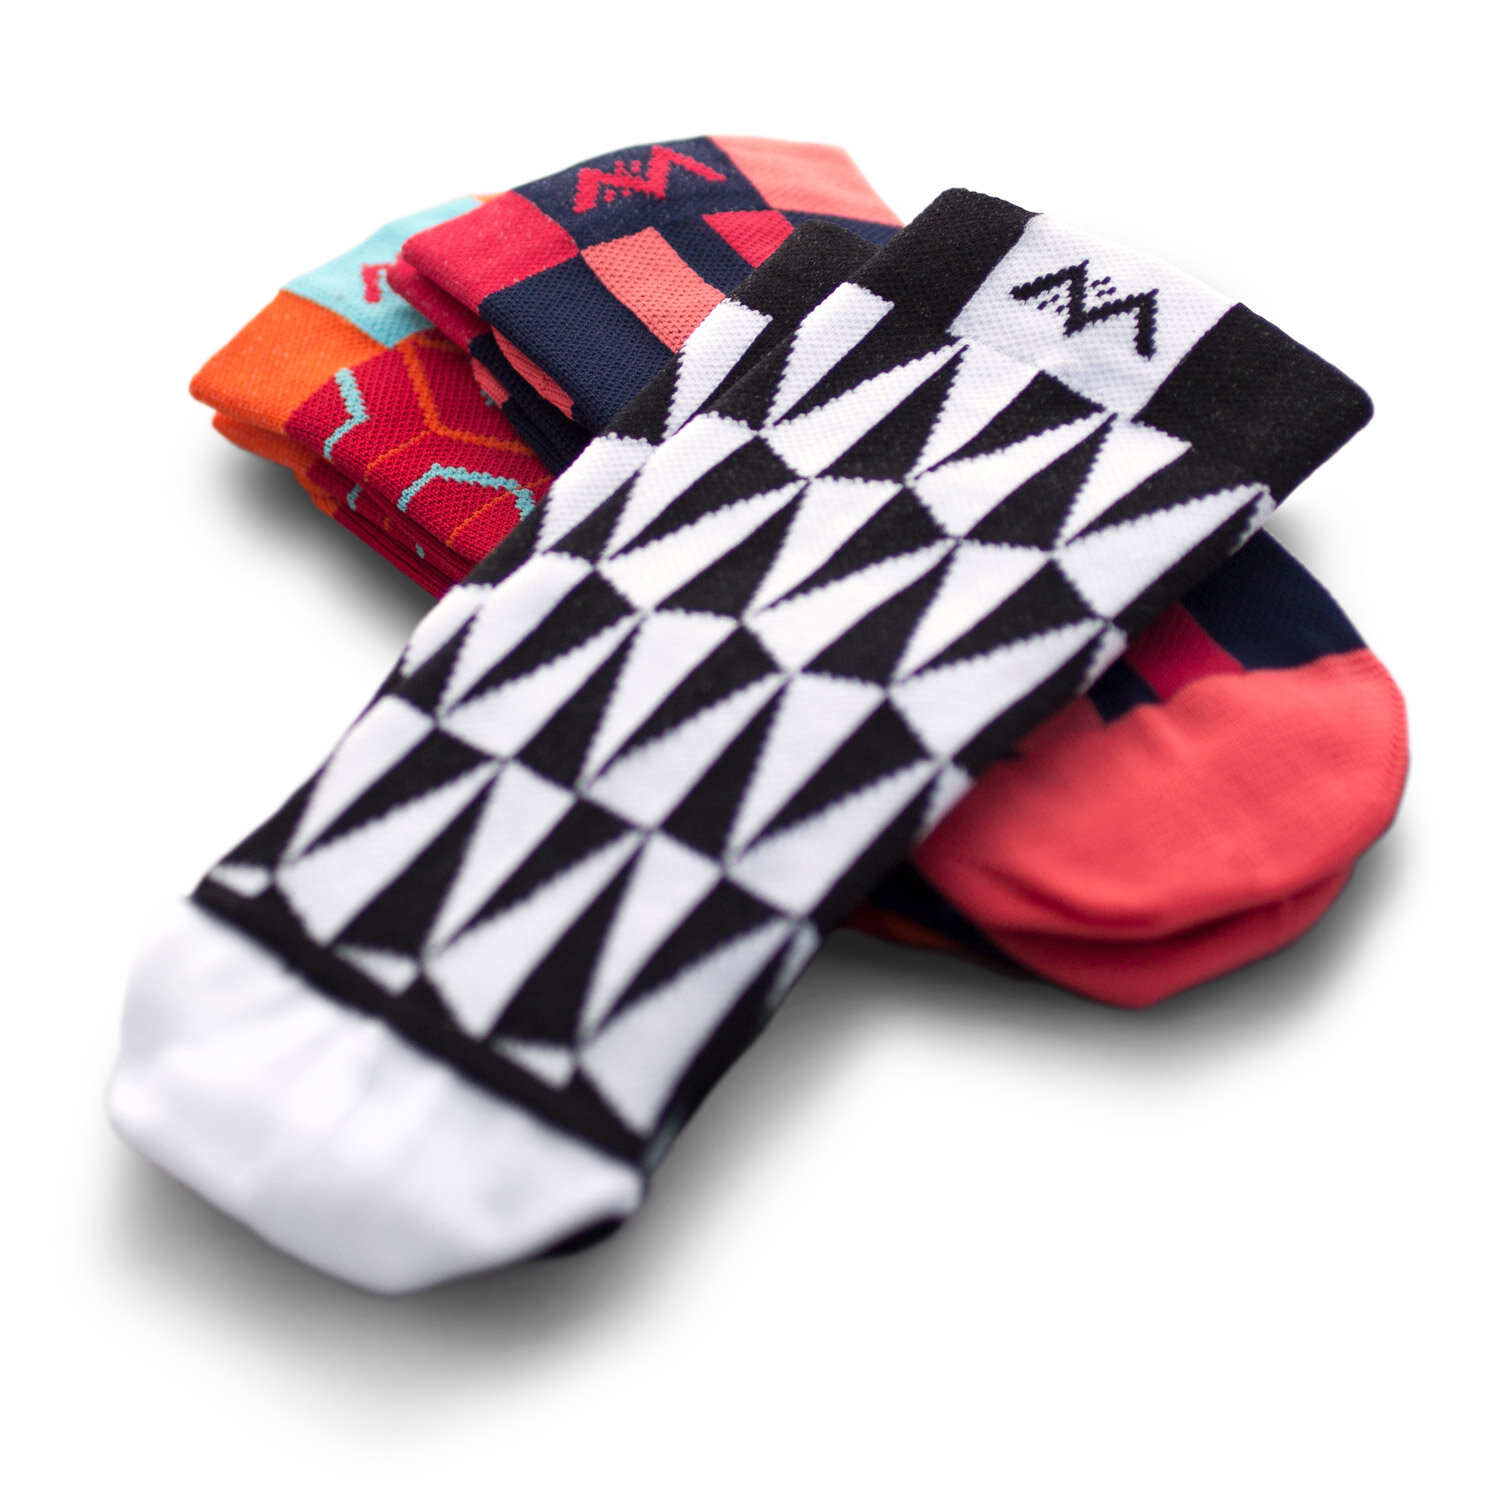 Mint cycling socks are finely knit and made in Italy.